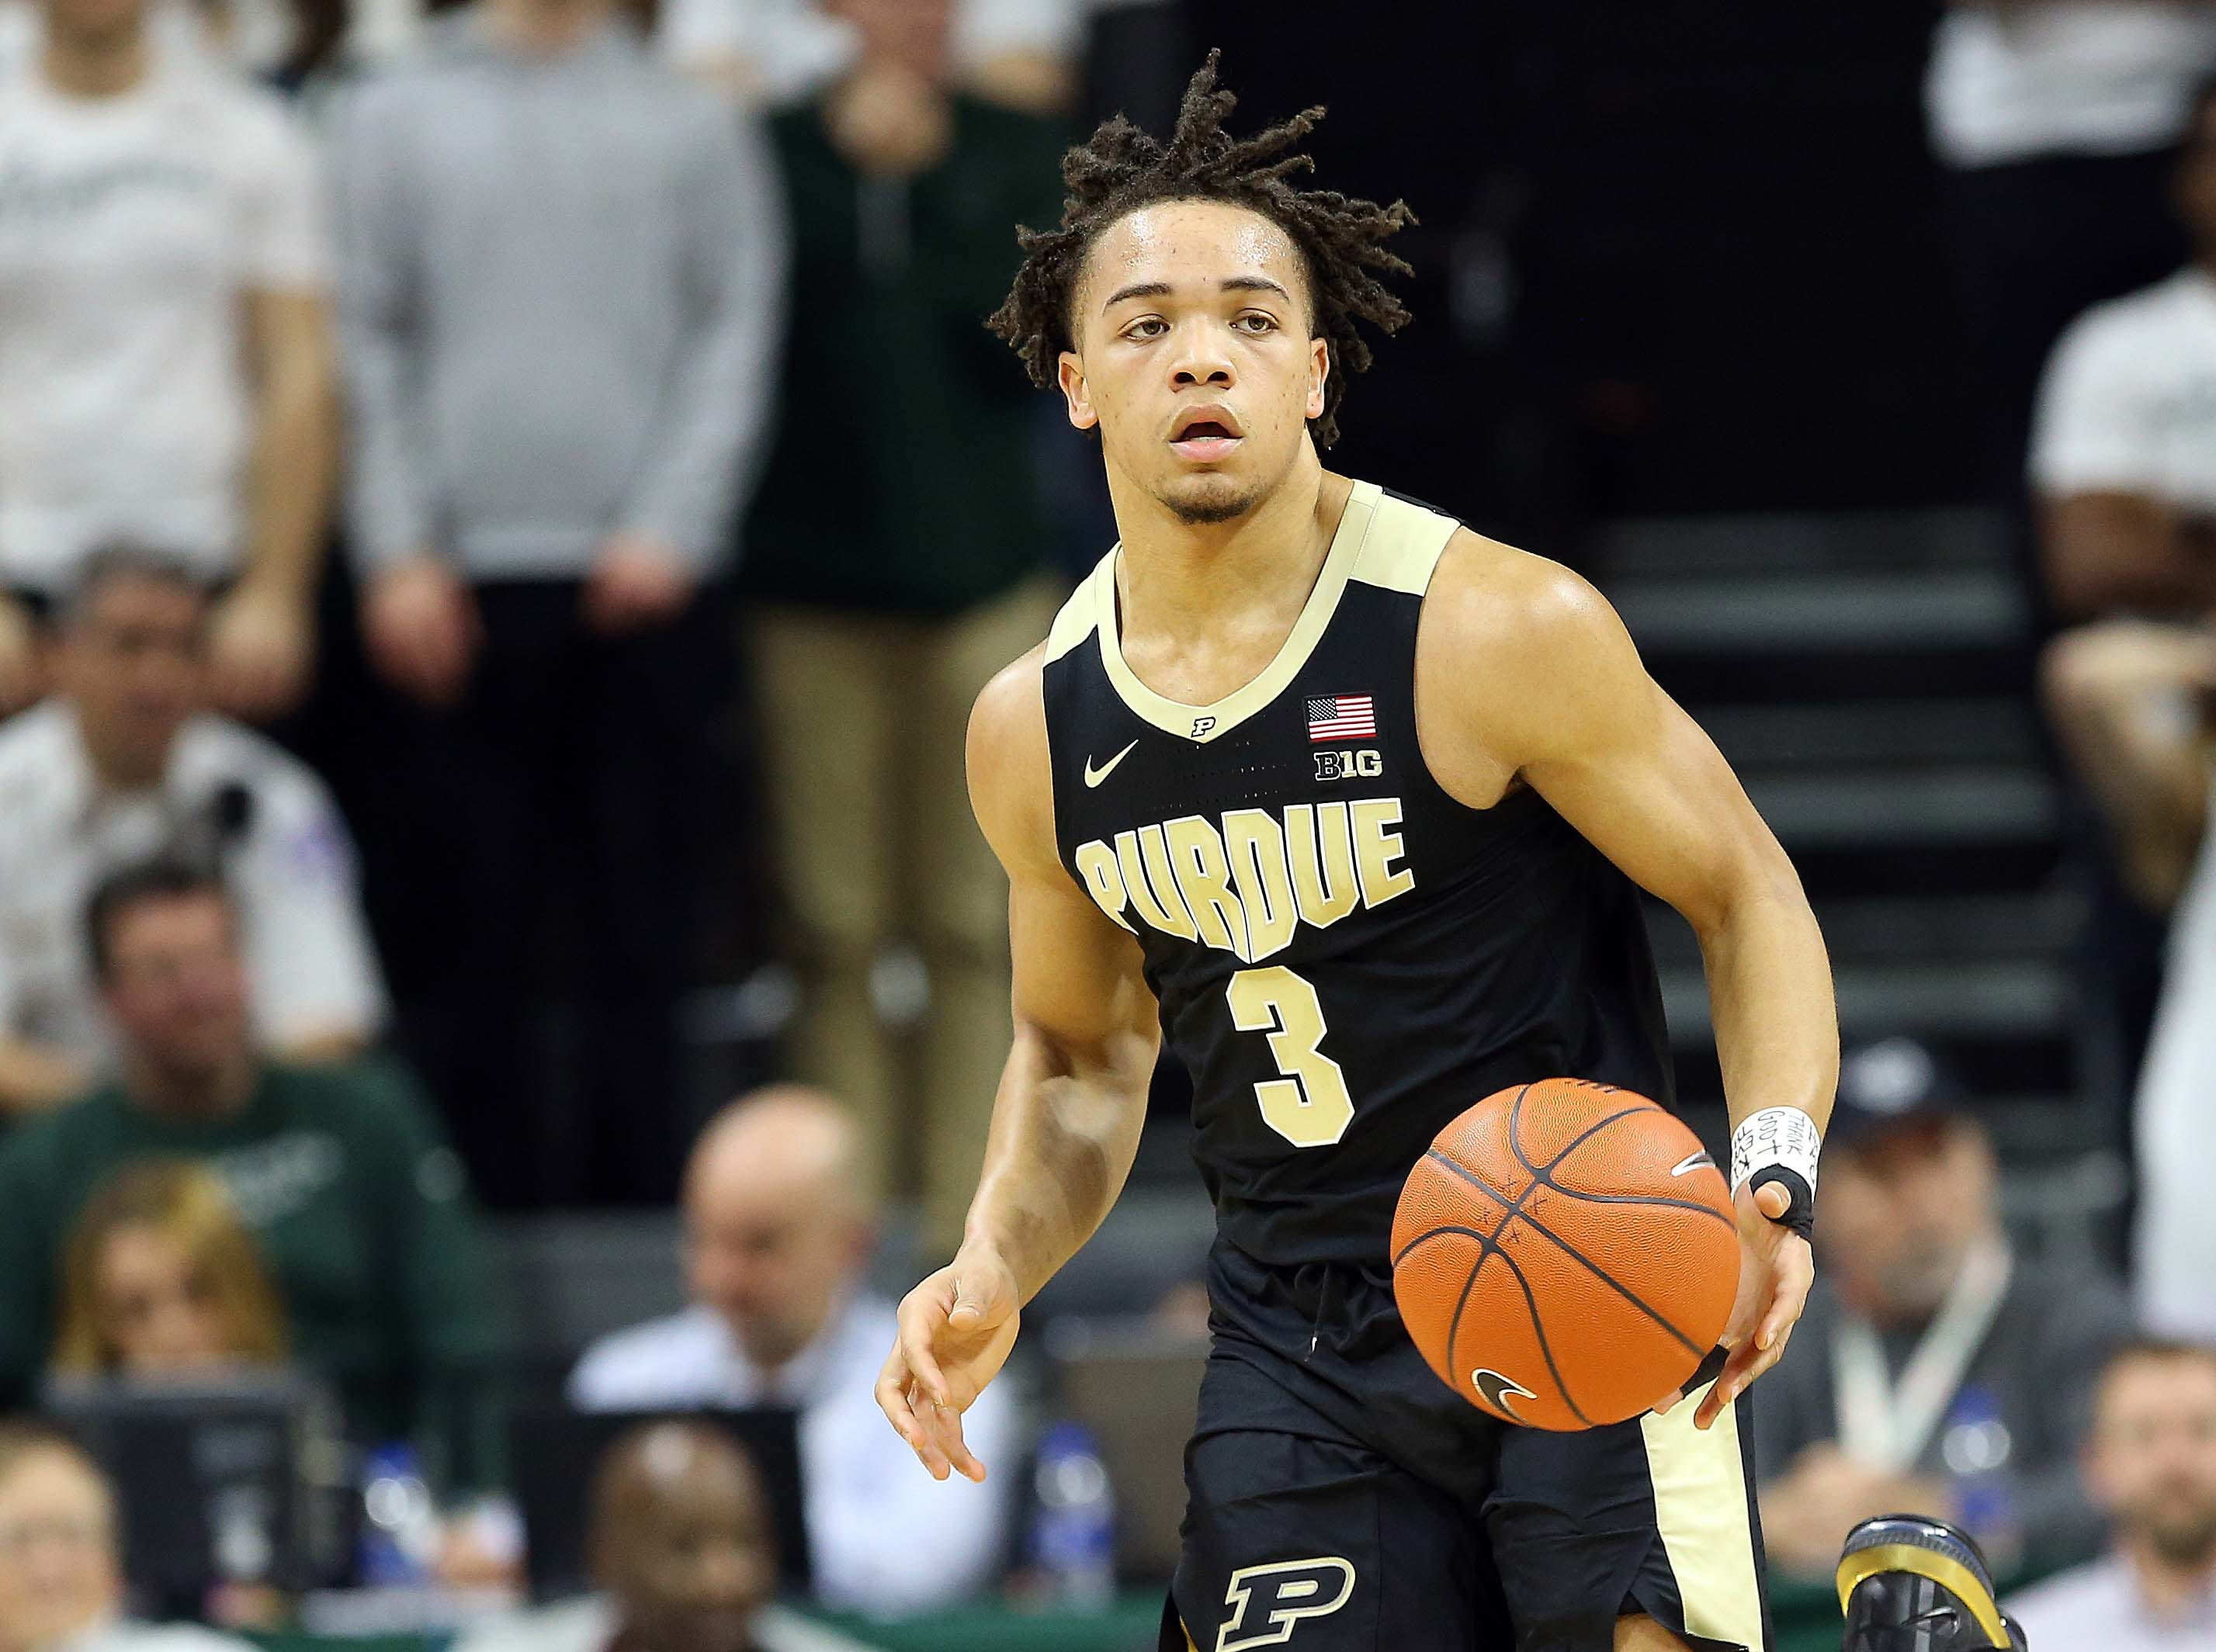 Jan 8, 2019; East Lansing, MI, USA; Purdue Boilermakers guard Carsen Edwards (3) brings the ball up court during the first half of a game against the Michigan State Spartans at the Breslin Center. Mandatory Credit: Mike Carter-USA TODAY Sports